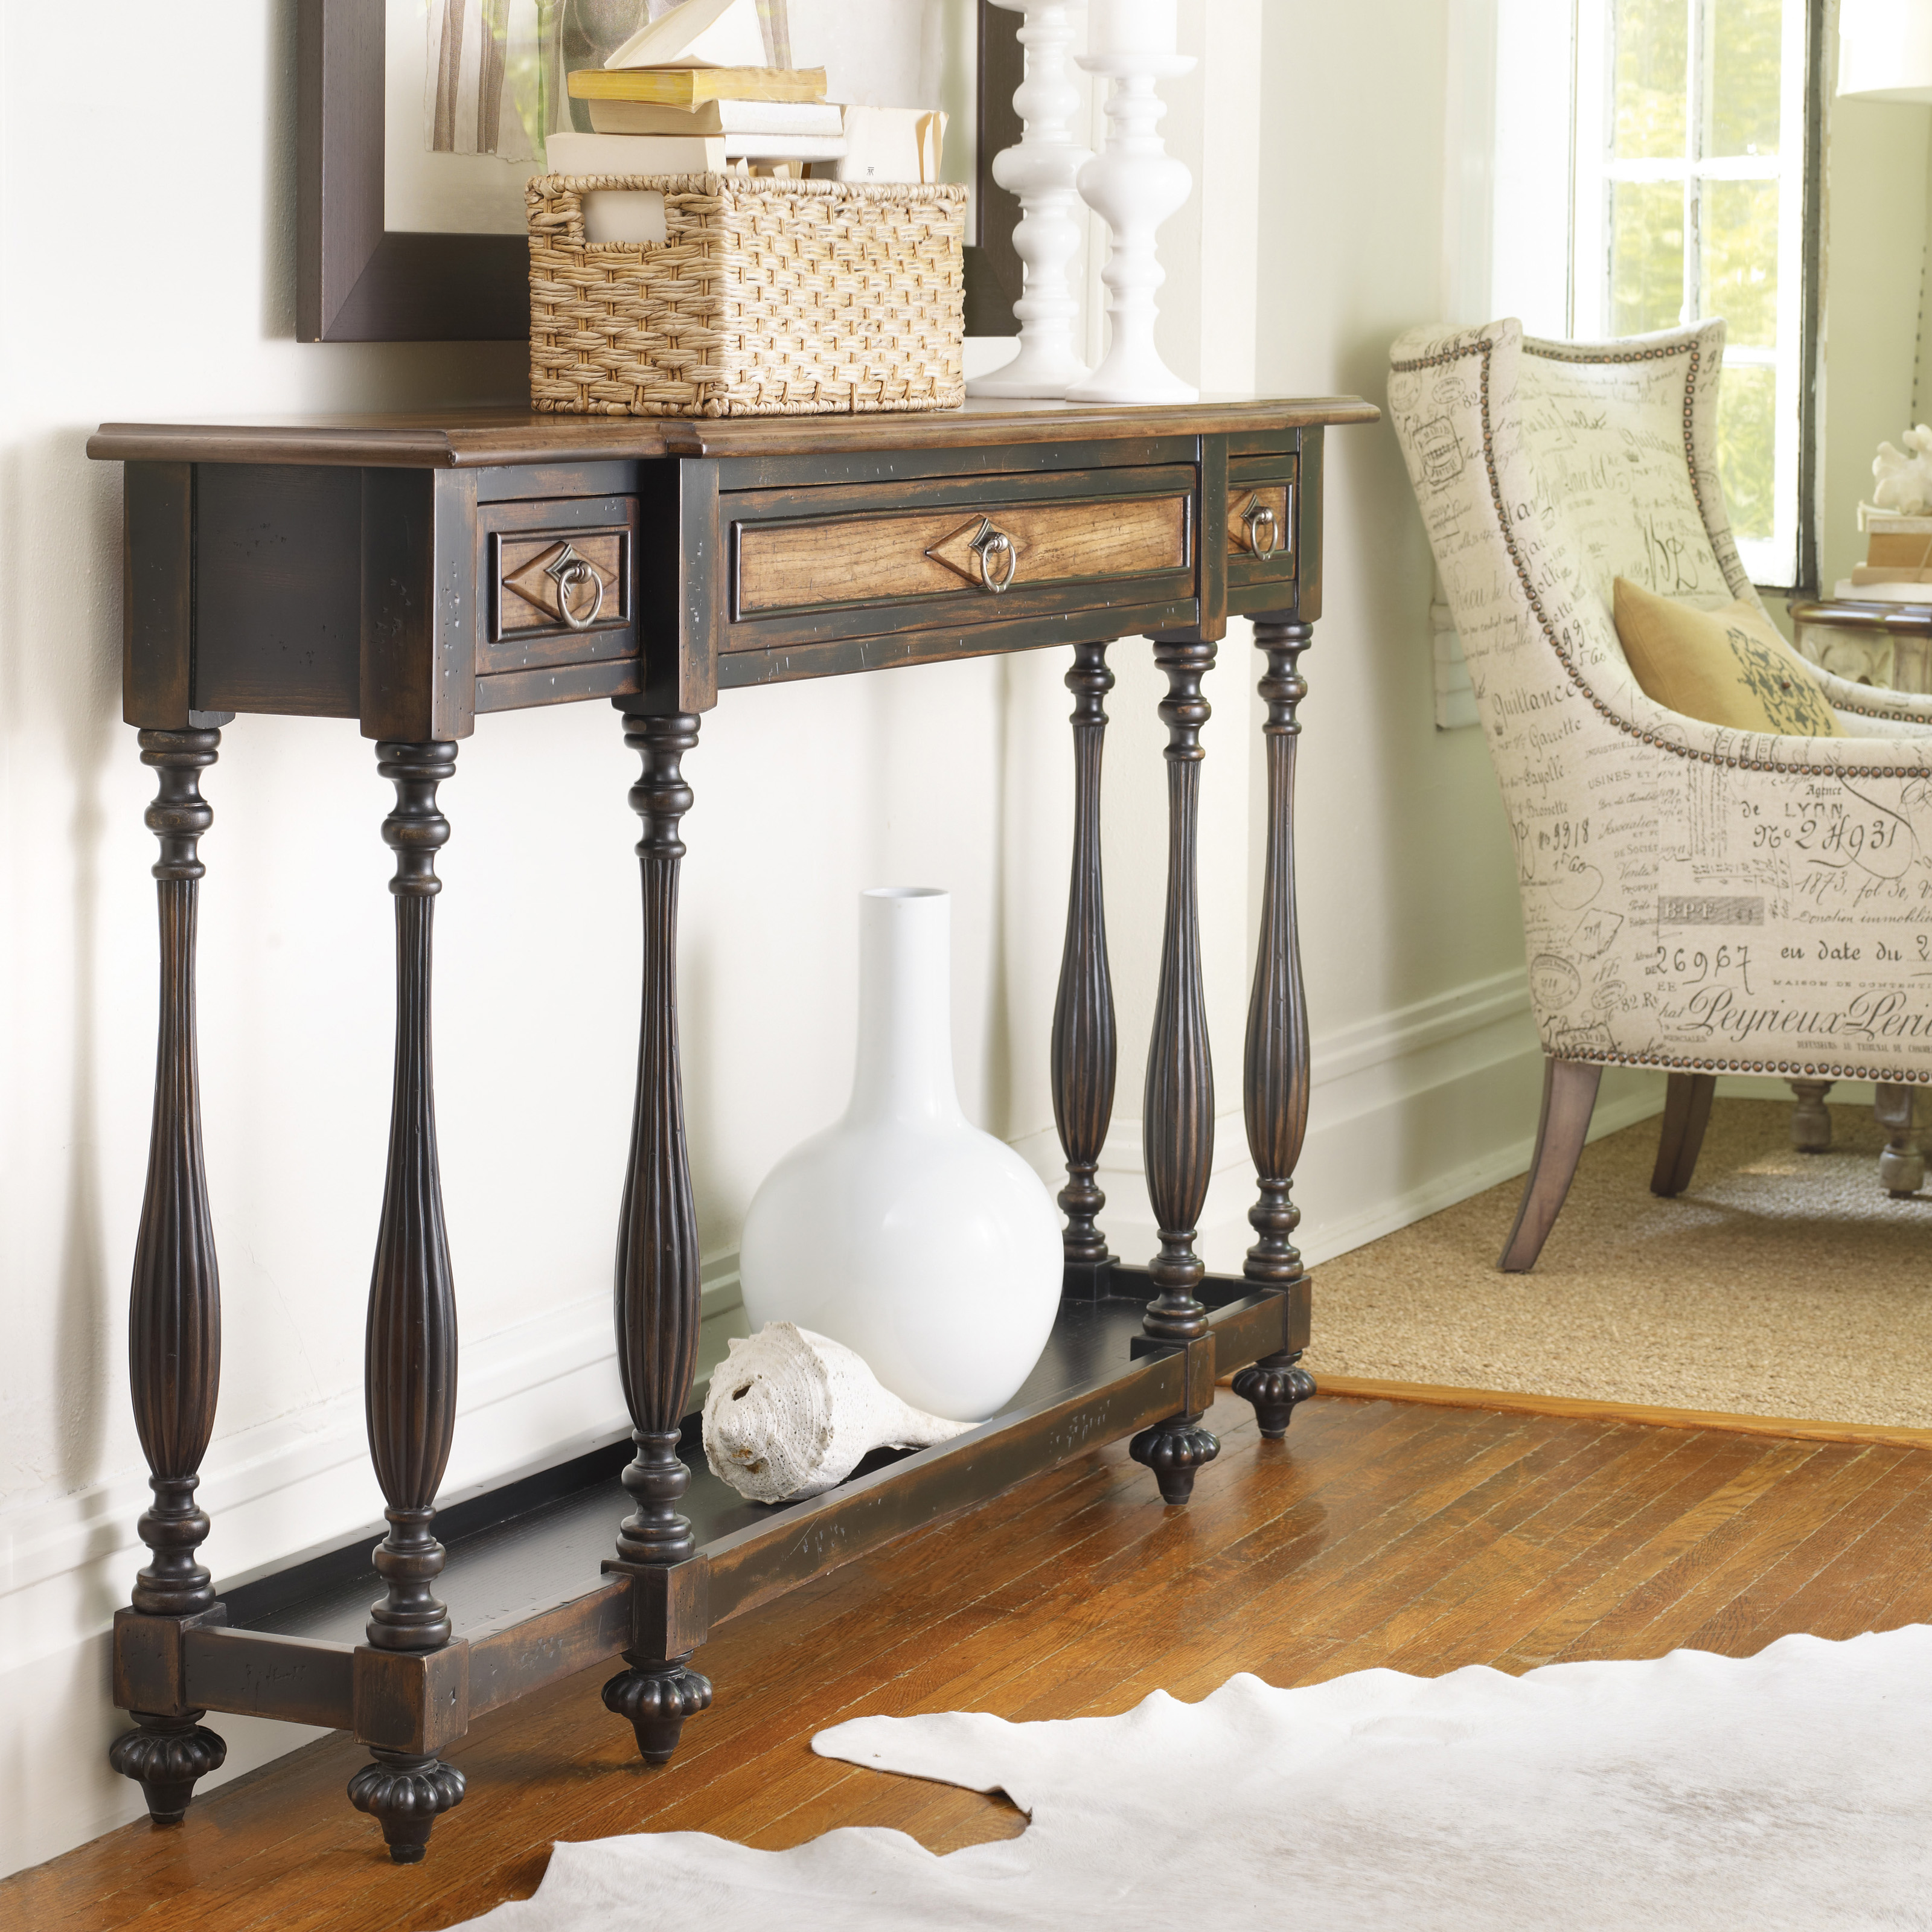 Hooker furniture ebony drift 3 drawer thin console table hayneedle geotapseo Image collections